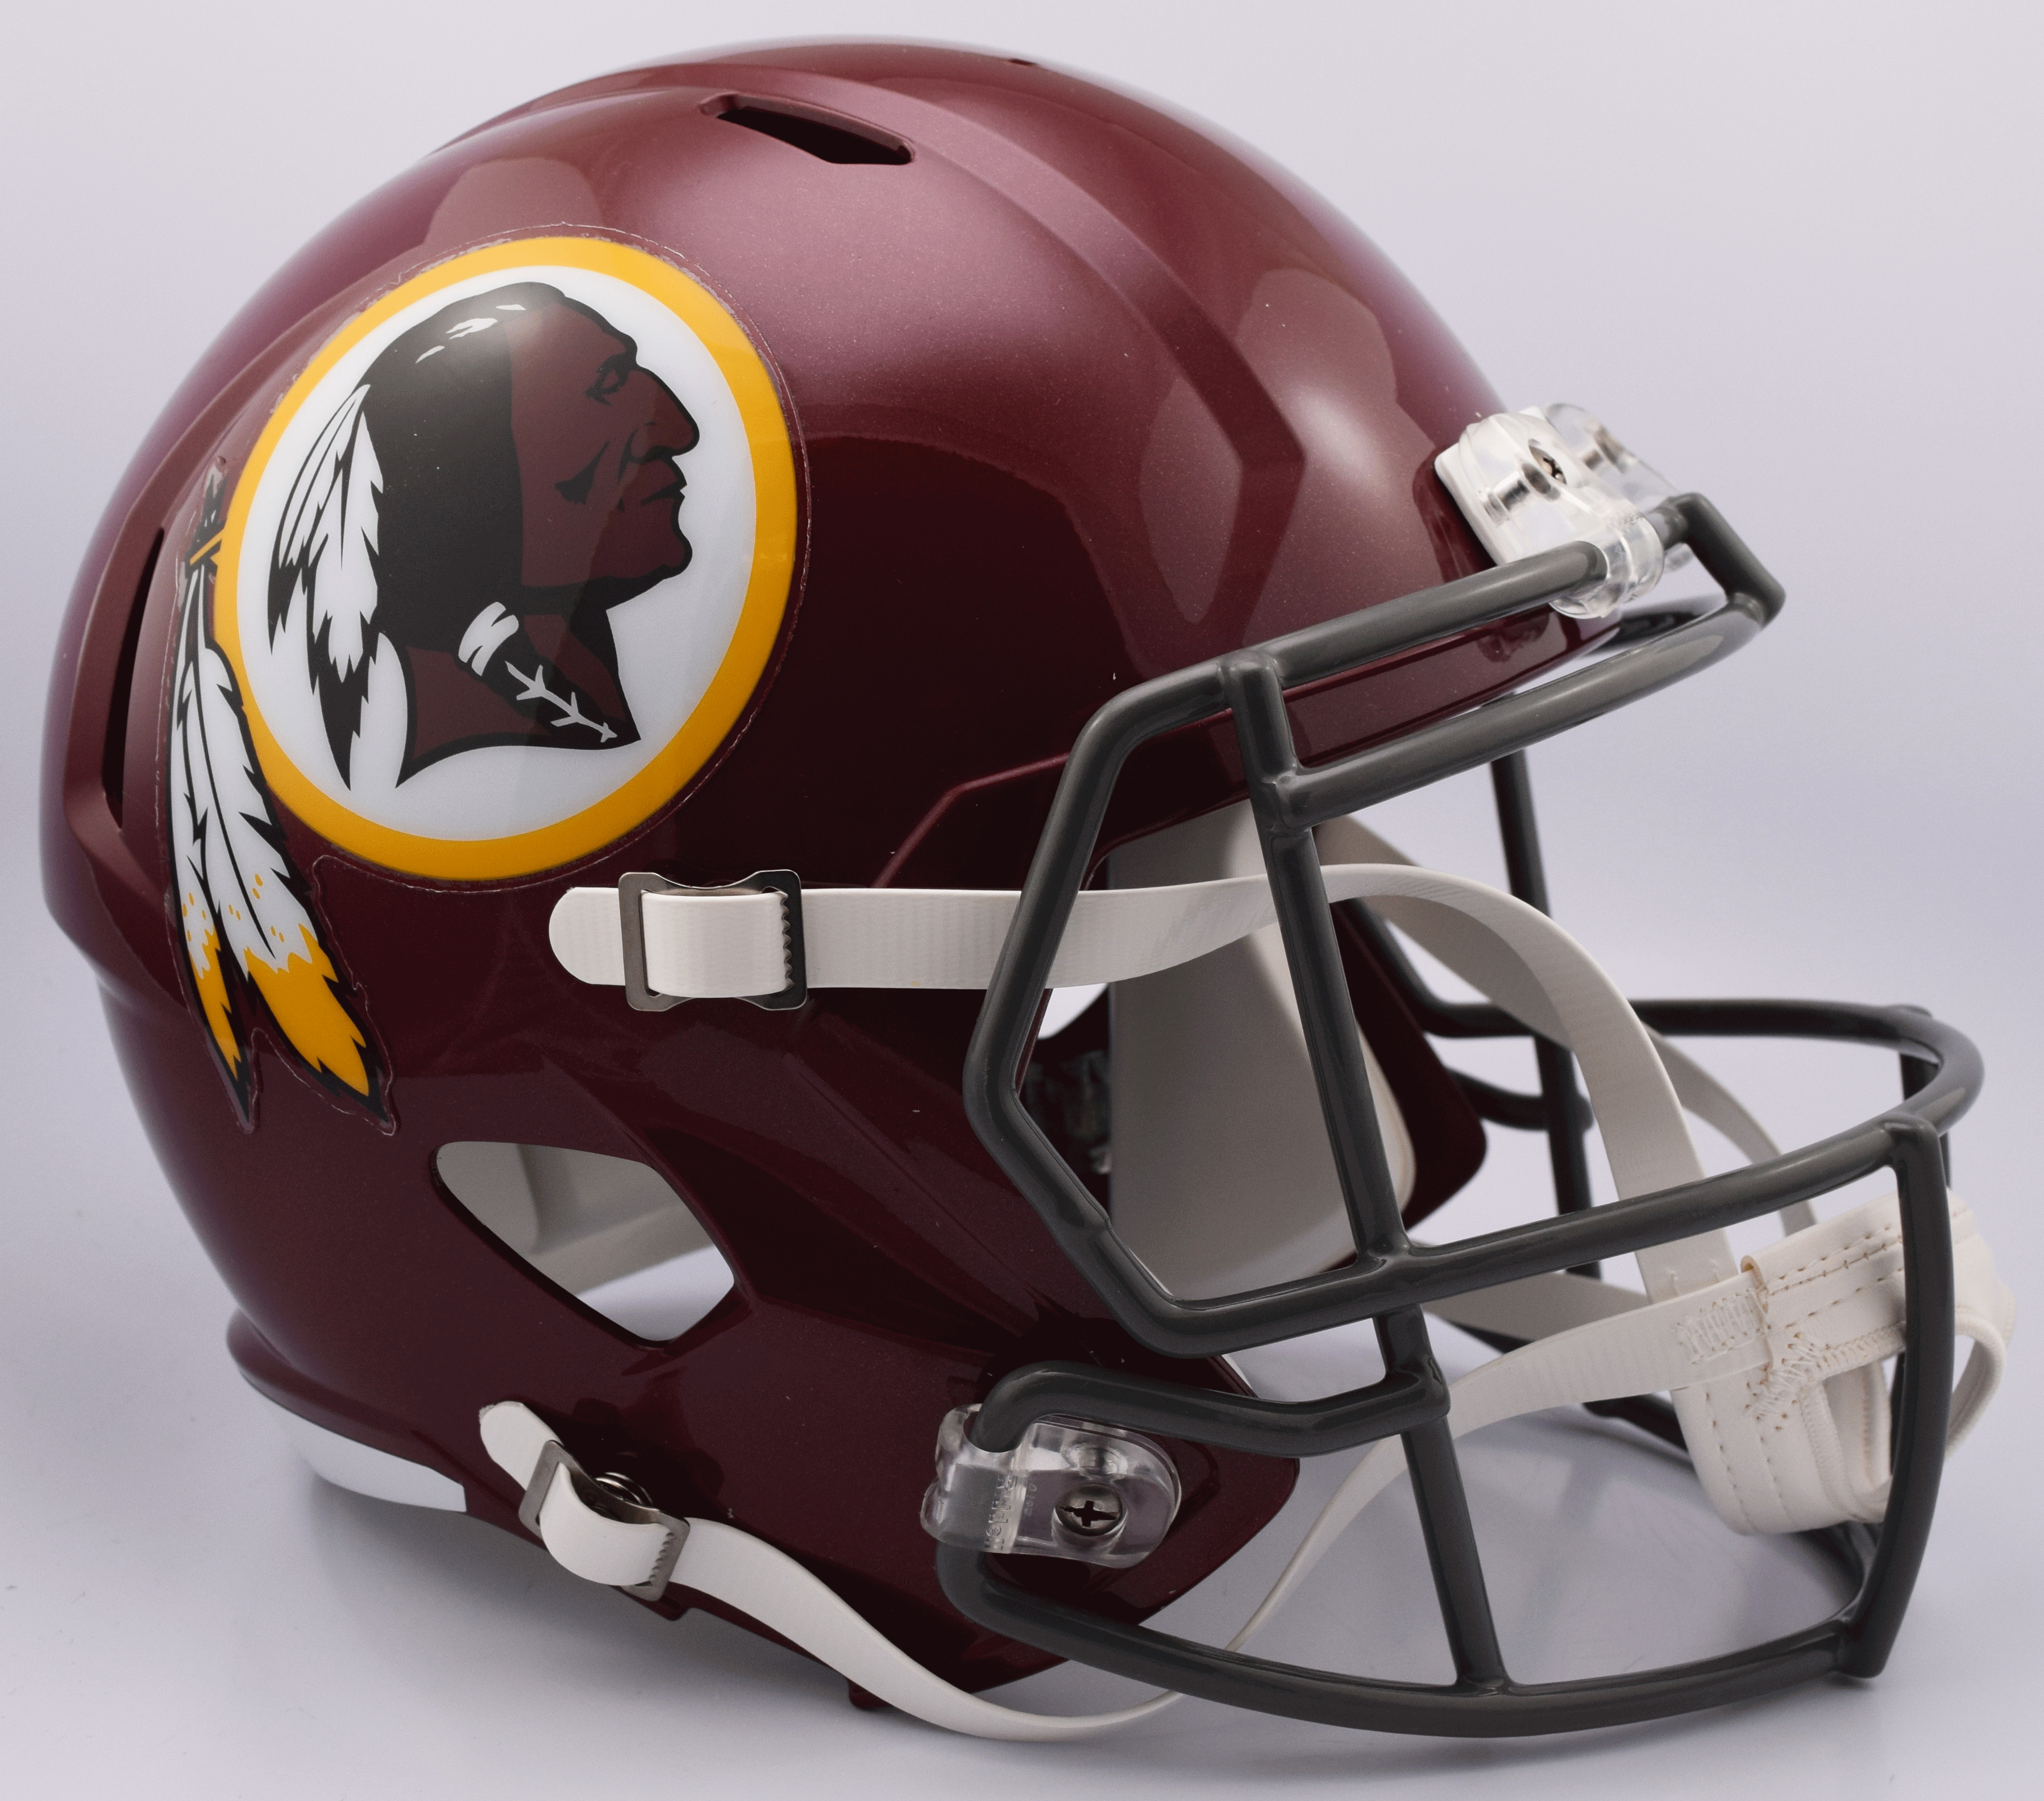 Washington Redskins Speed Replica Football Helmet <B>2018 Tribute</B>